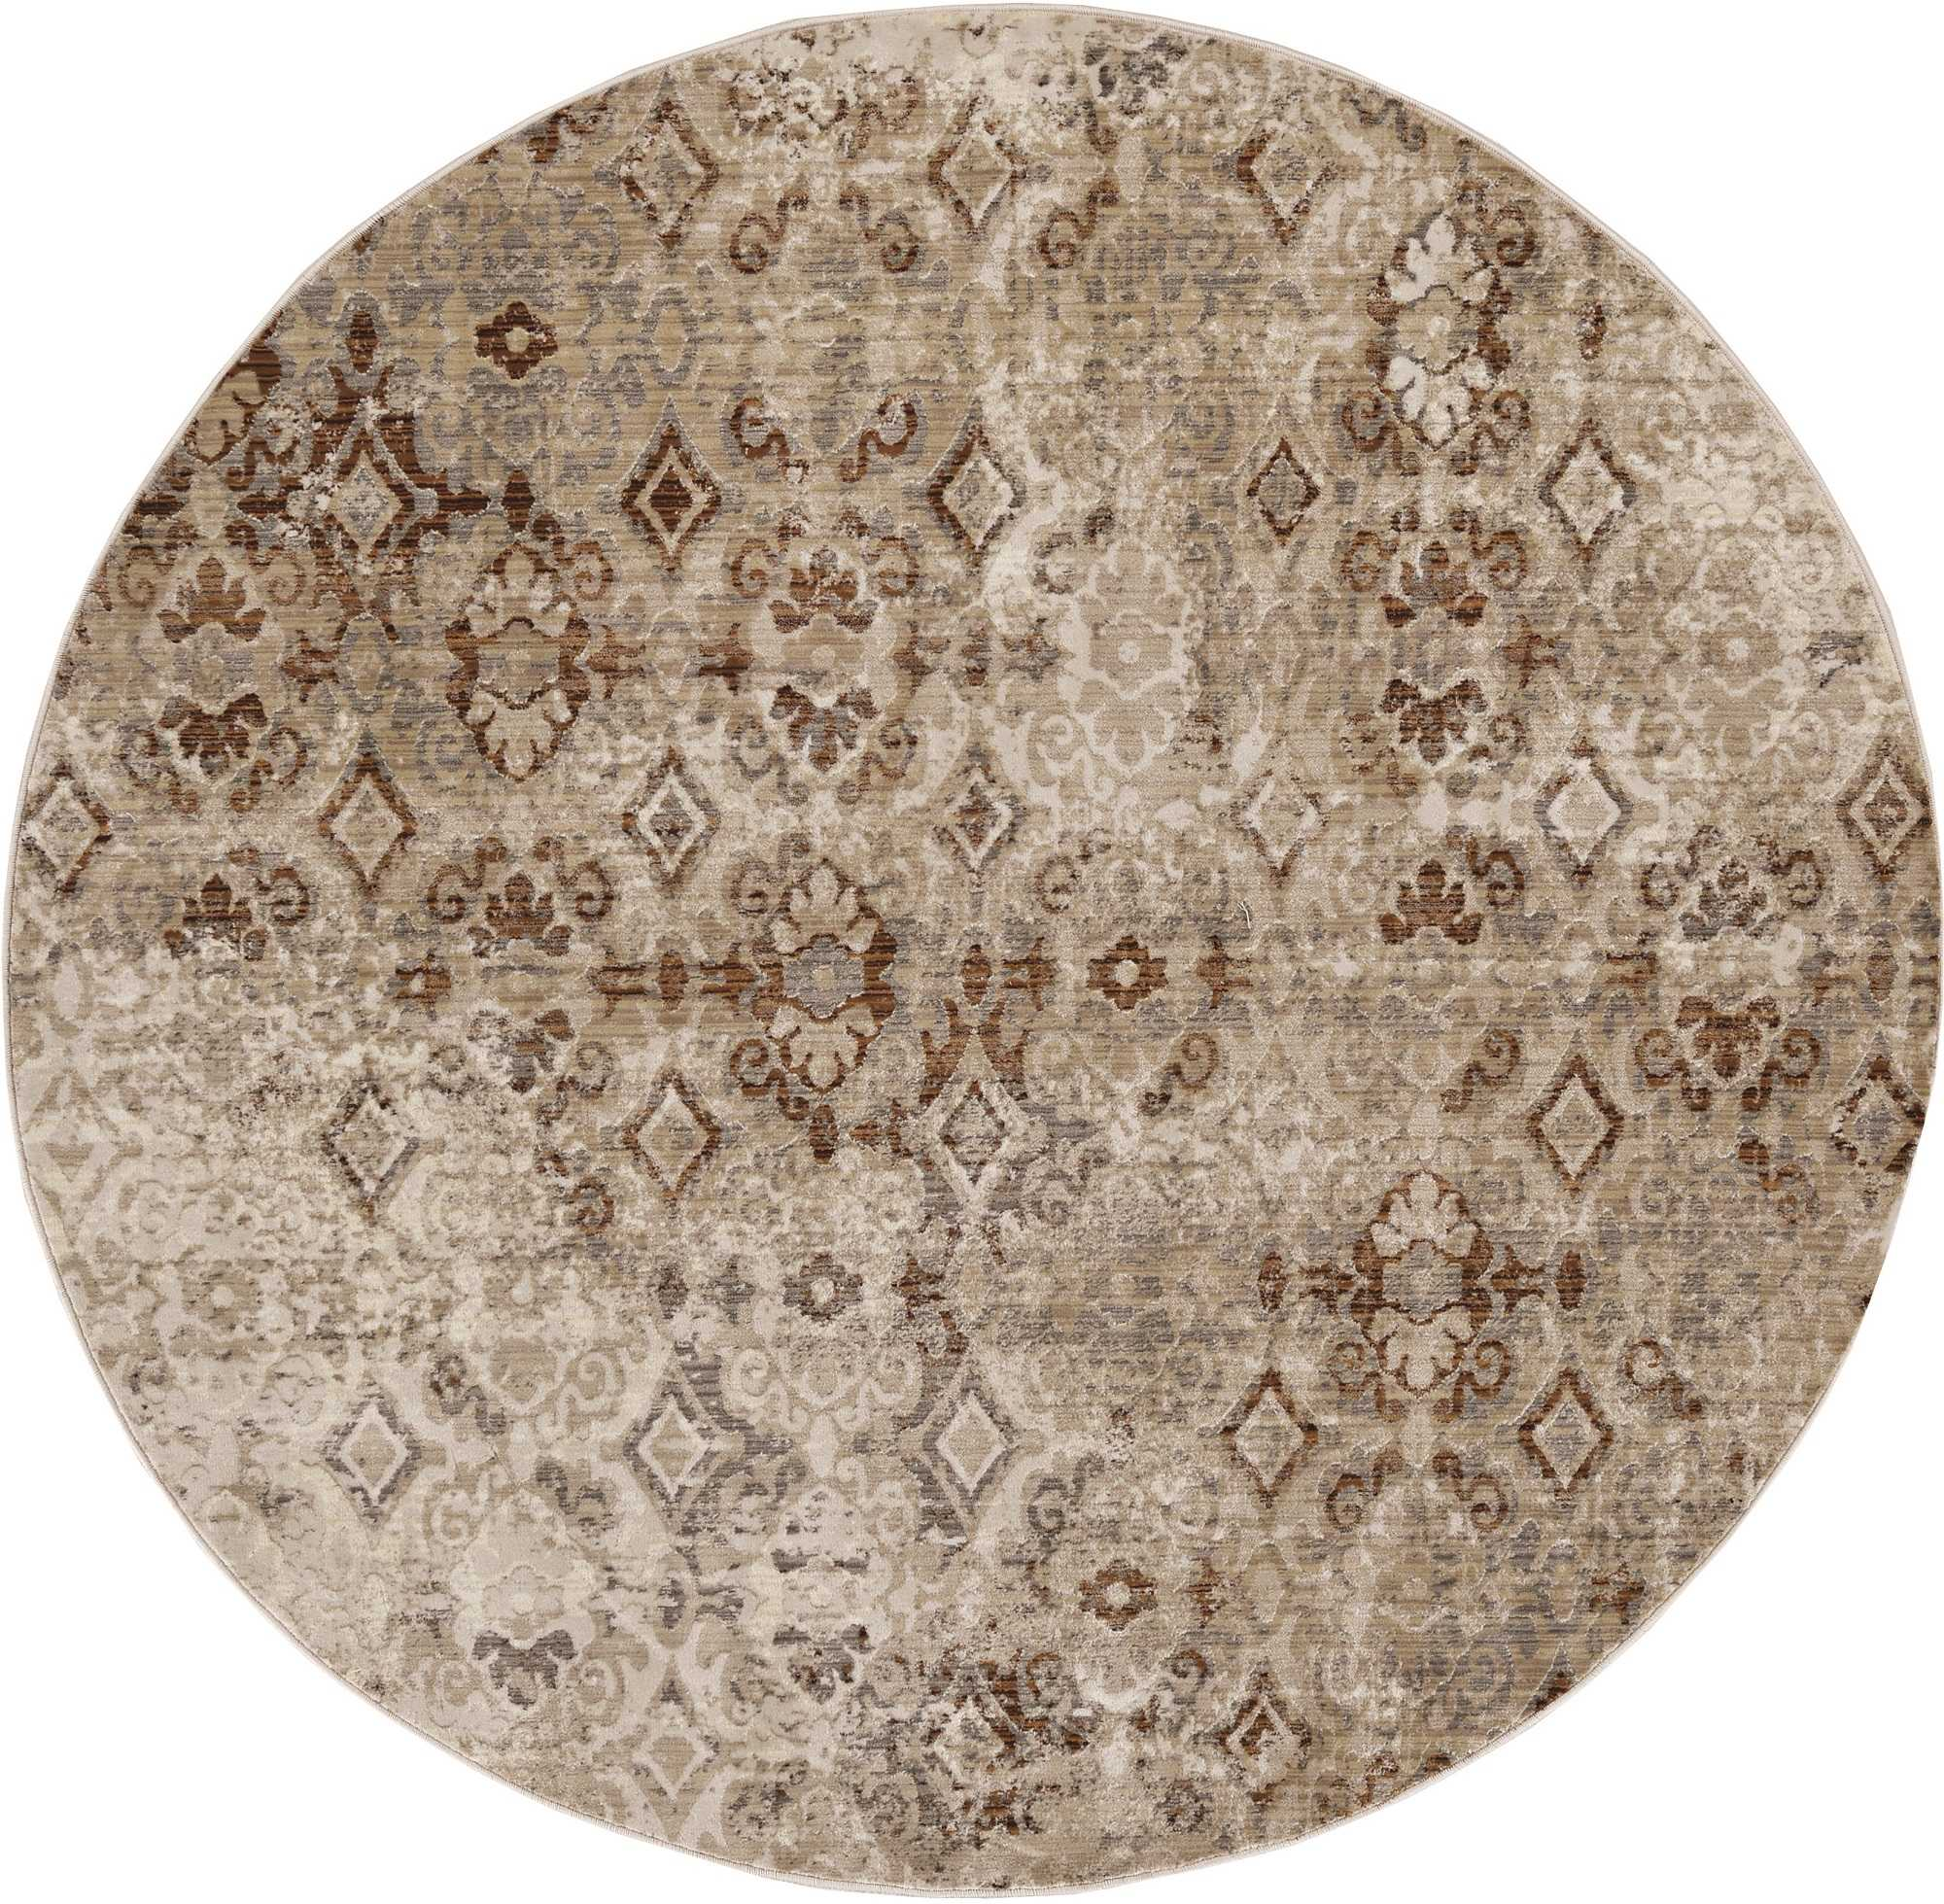 7' Sand Ivory Machine Woven Distressed Traditional Round Area Rug